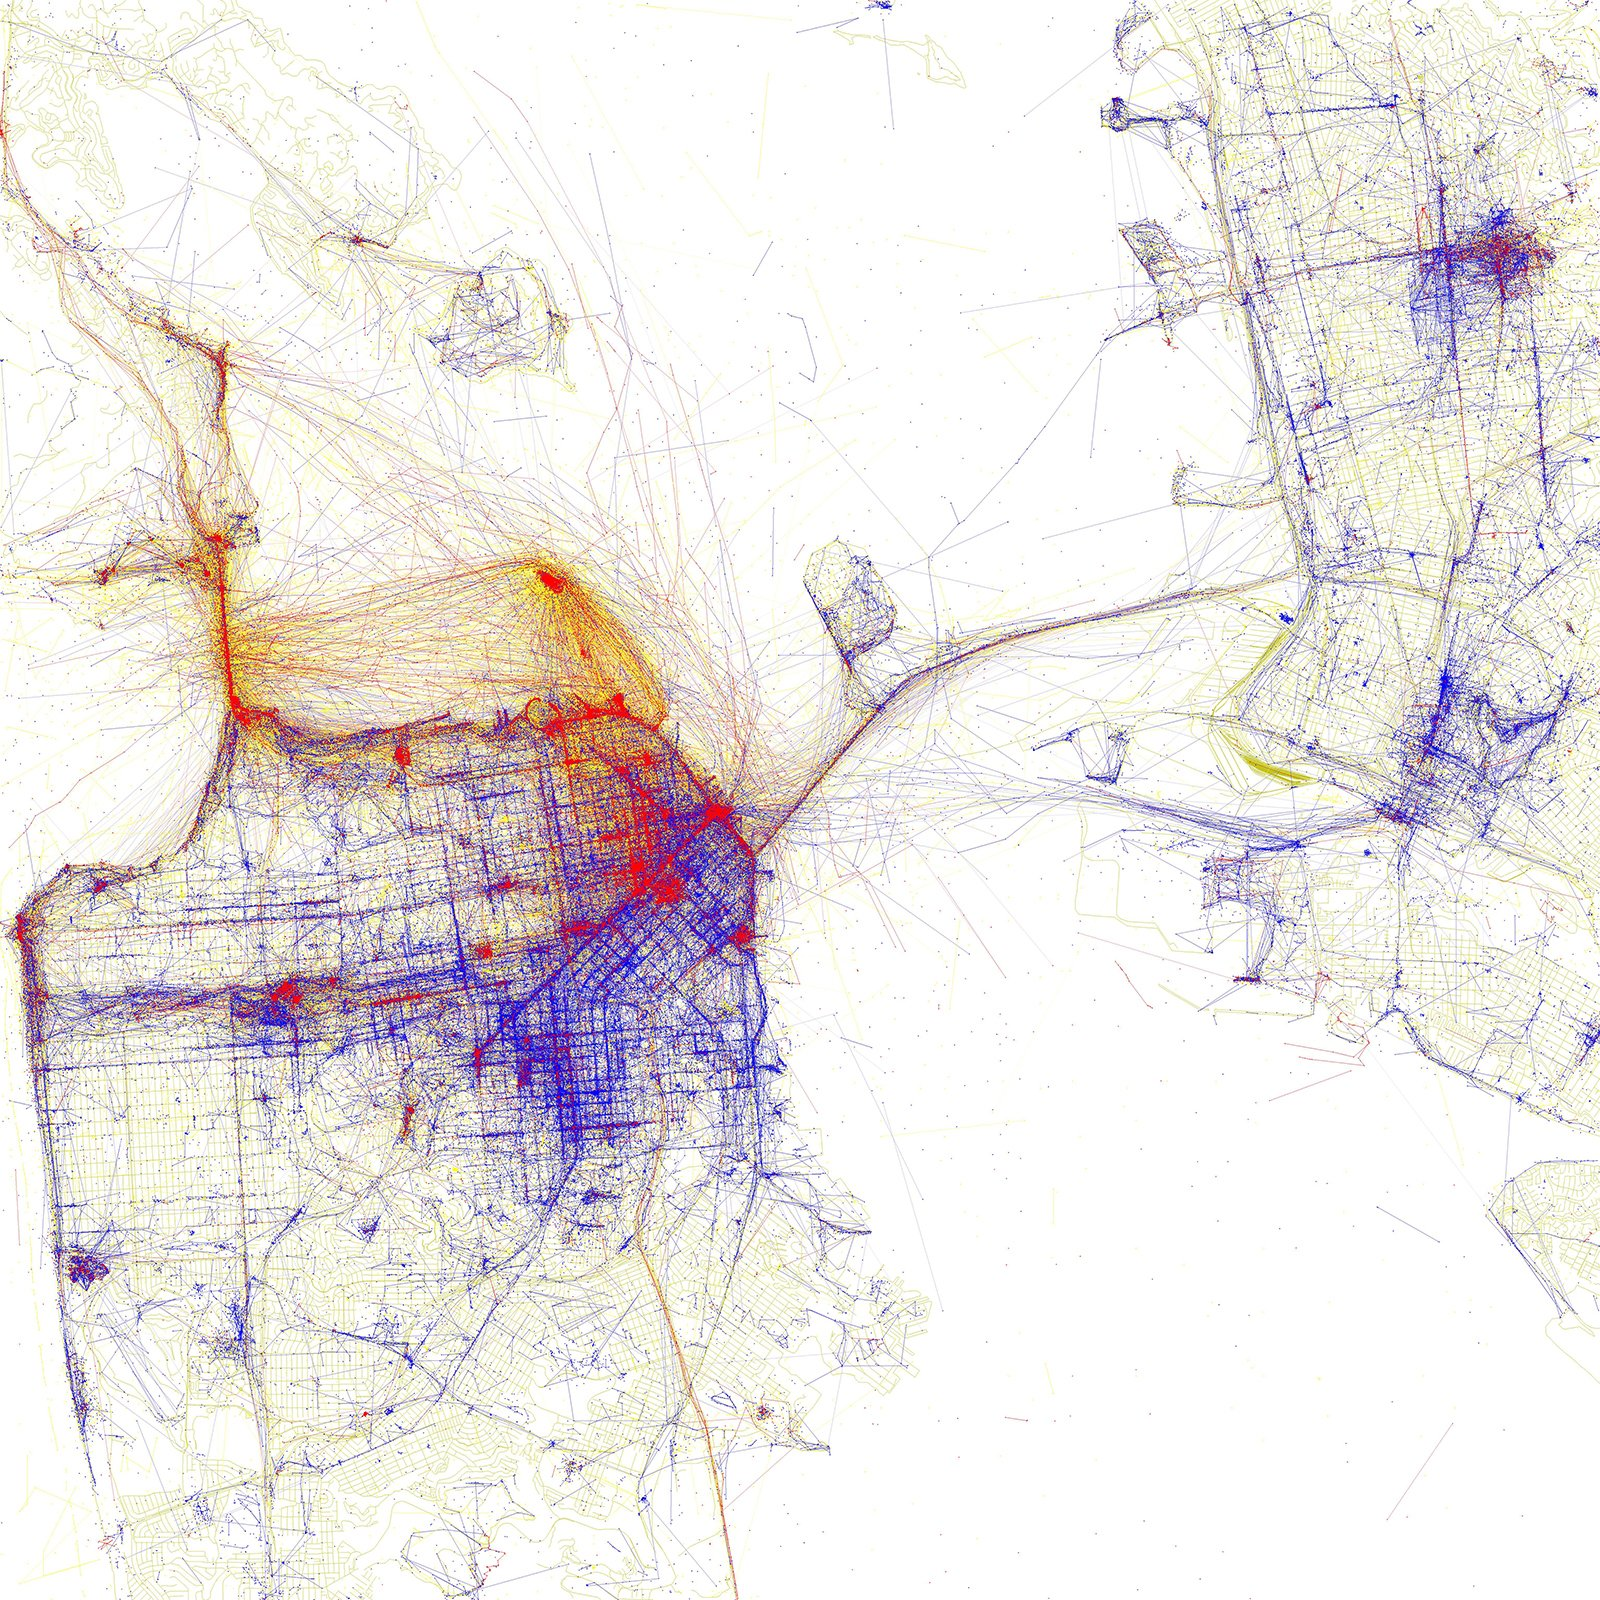 """The SPUR exhibition Urban Cartography, which is open until February 6, 2015, documents mapmaking in the past twenty years. Eric Fischer's map, one of the myriad pieces on view, documents where locals and tourists in San Francisco take photographs using geotagged images from Flickr and Picasa. Blue signifies locals, red is tourists, and yellow could be either. """"His maps are gorgeous,"""" says Allison Arieff, SPUR's editorial director and the show's curator. """"It's not immediately apparent what they are showing but a little explanation goes a long way.""""  Photo 1 of 7 in A Cartography Exhibition Uncovers Fascinating Maps About the Bay Area"""